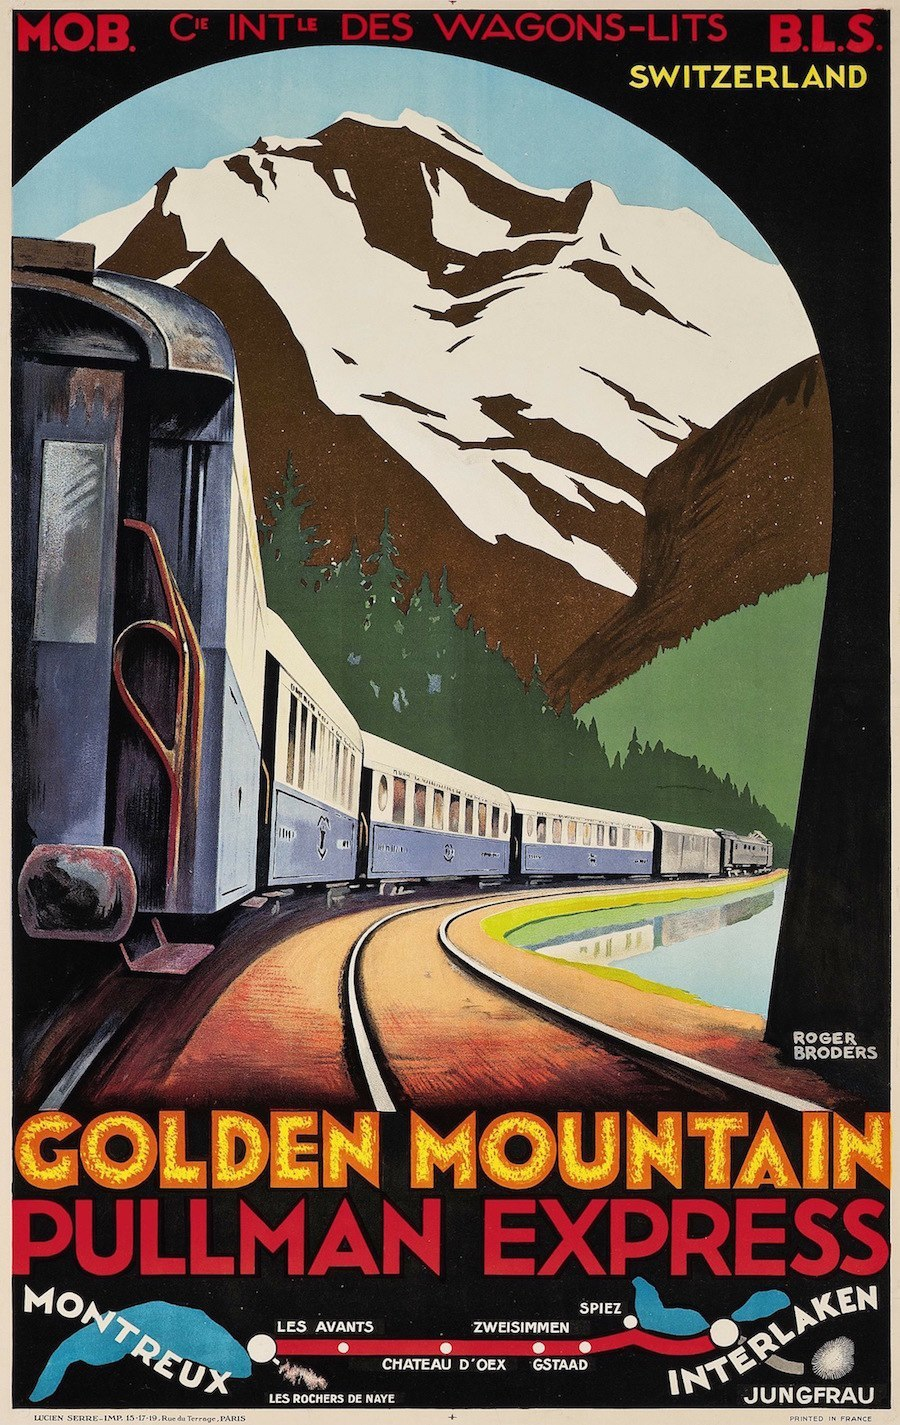 Golden Mountain Pullman Express, c.1930.